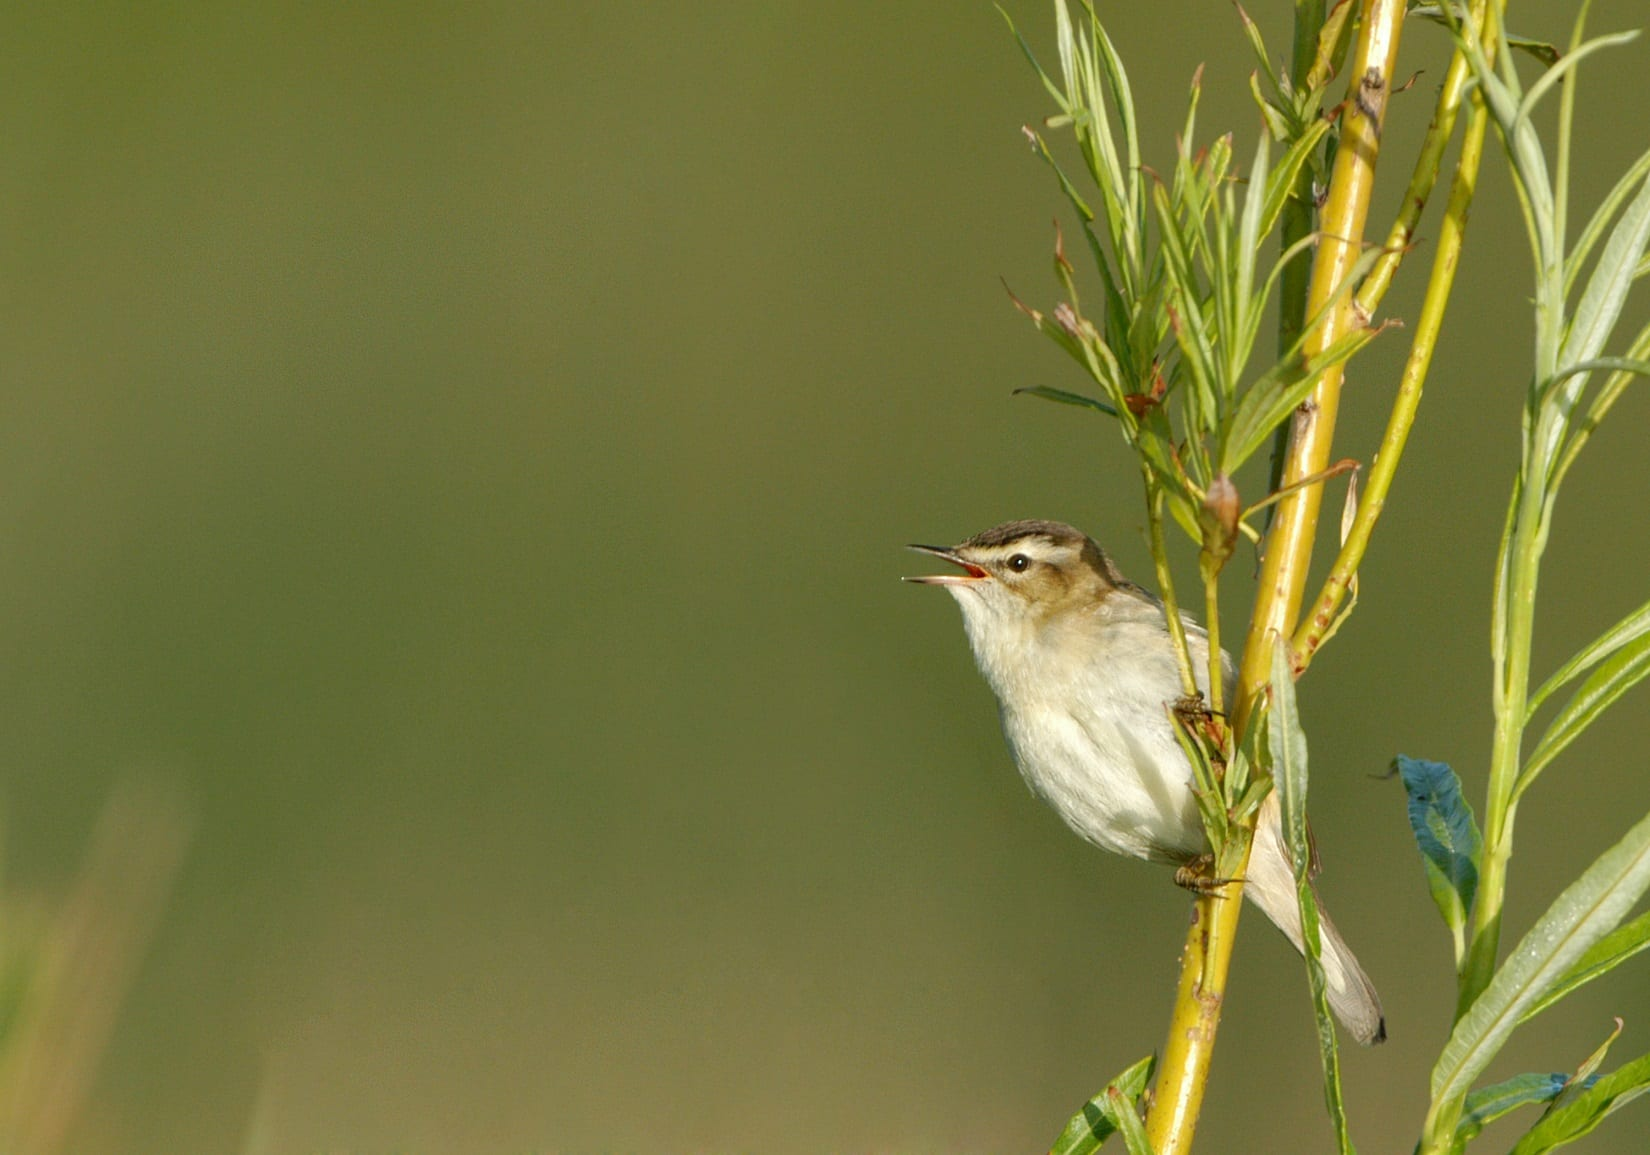 sedge-warbler-perched-on-willow